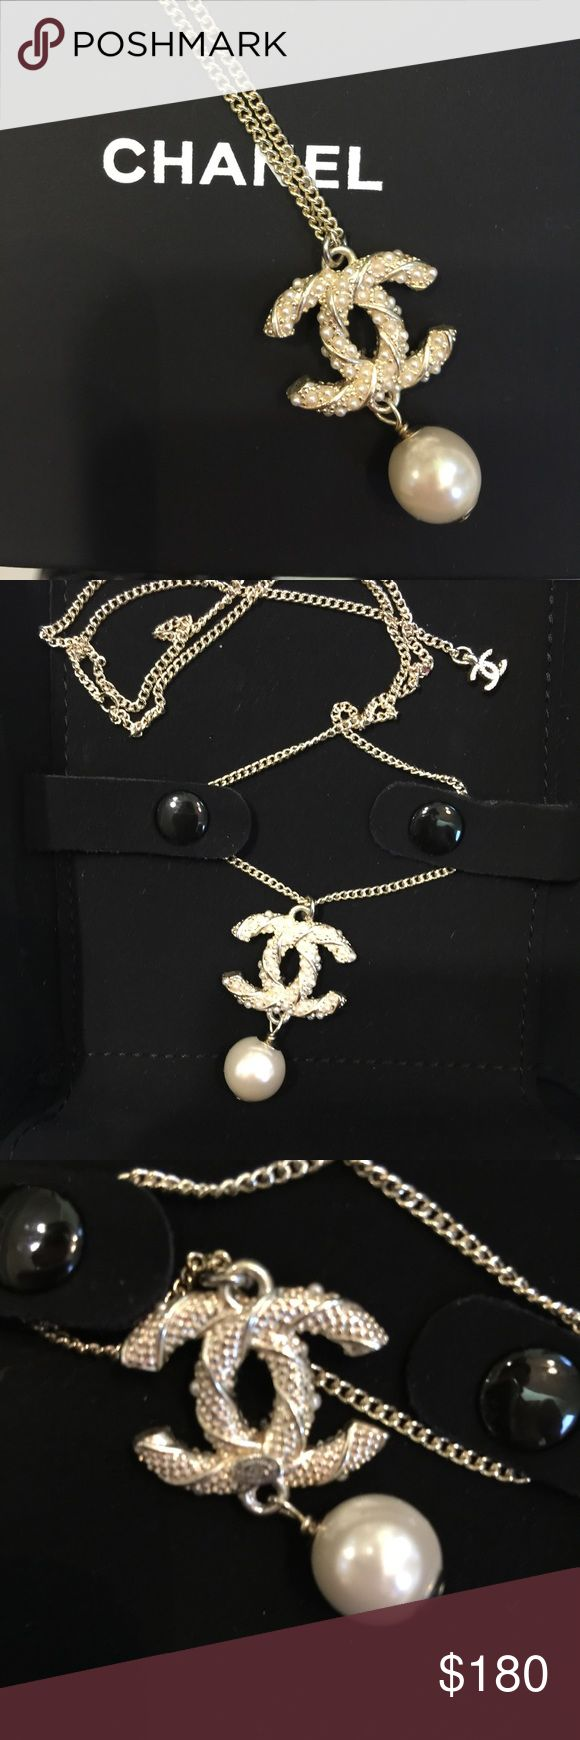 Beautiful Chanel necklace in light gold Stamped on the back. High quality. Price reflects everything so kindly don't ask the obvious. Comes with a box. CHANEL Jewelry Necklaces